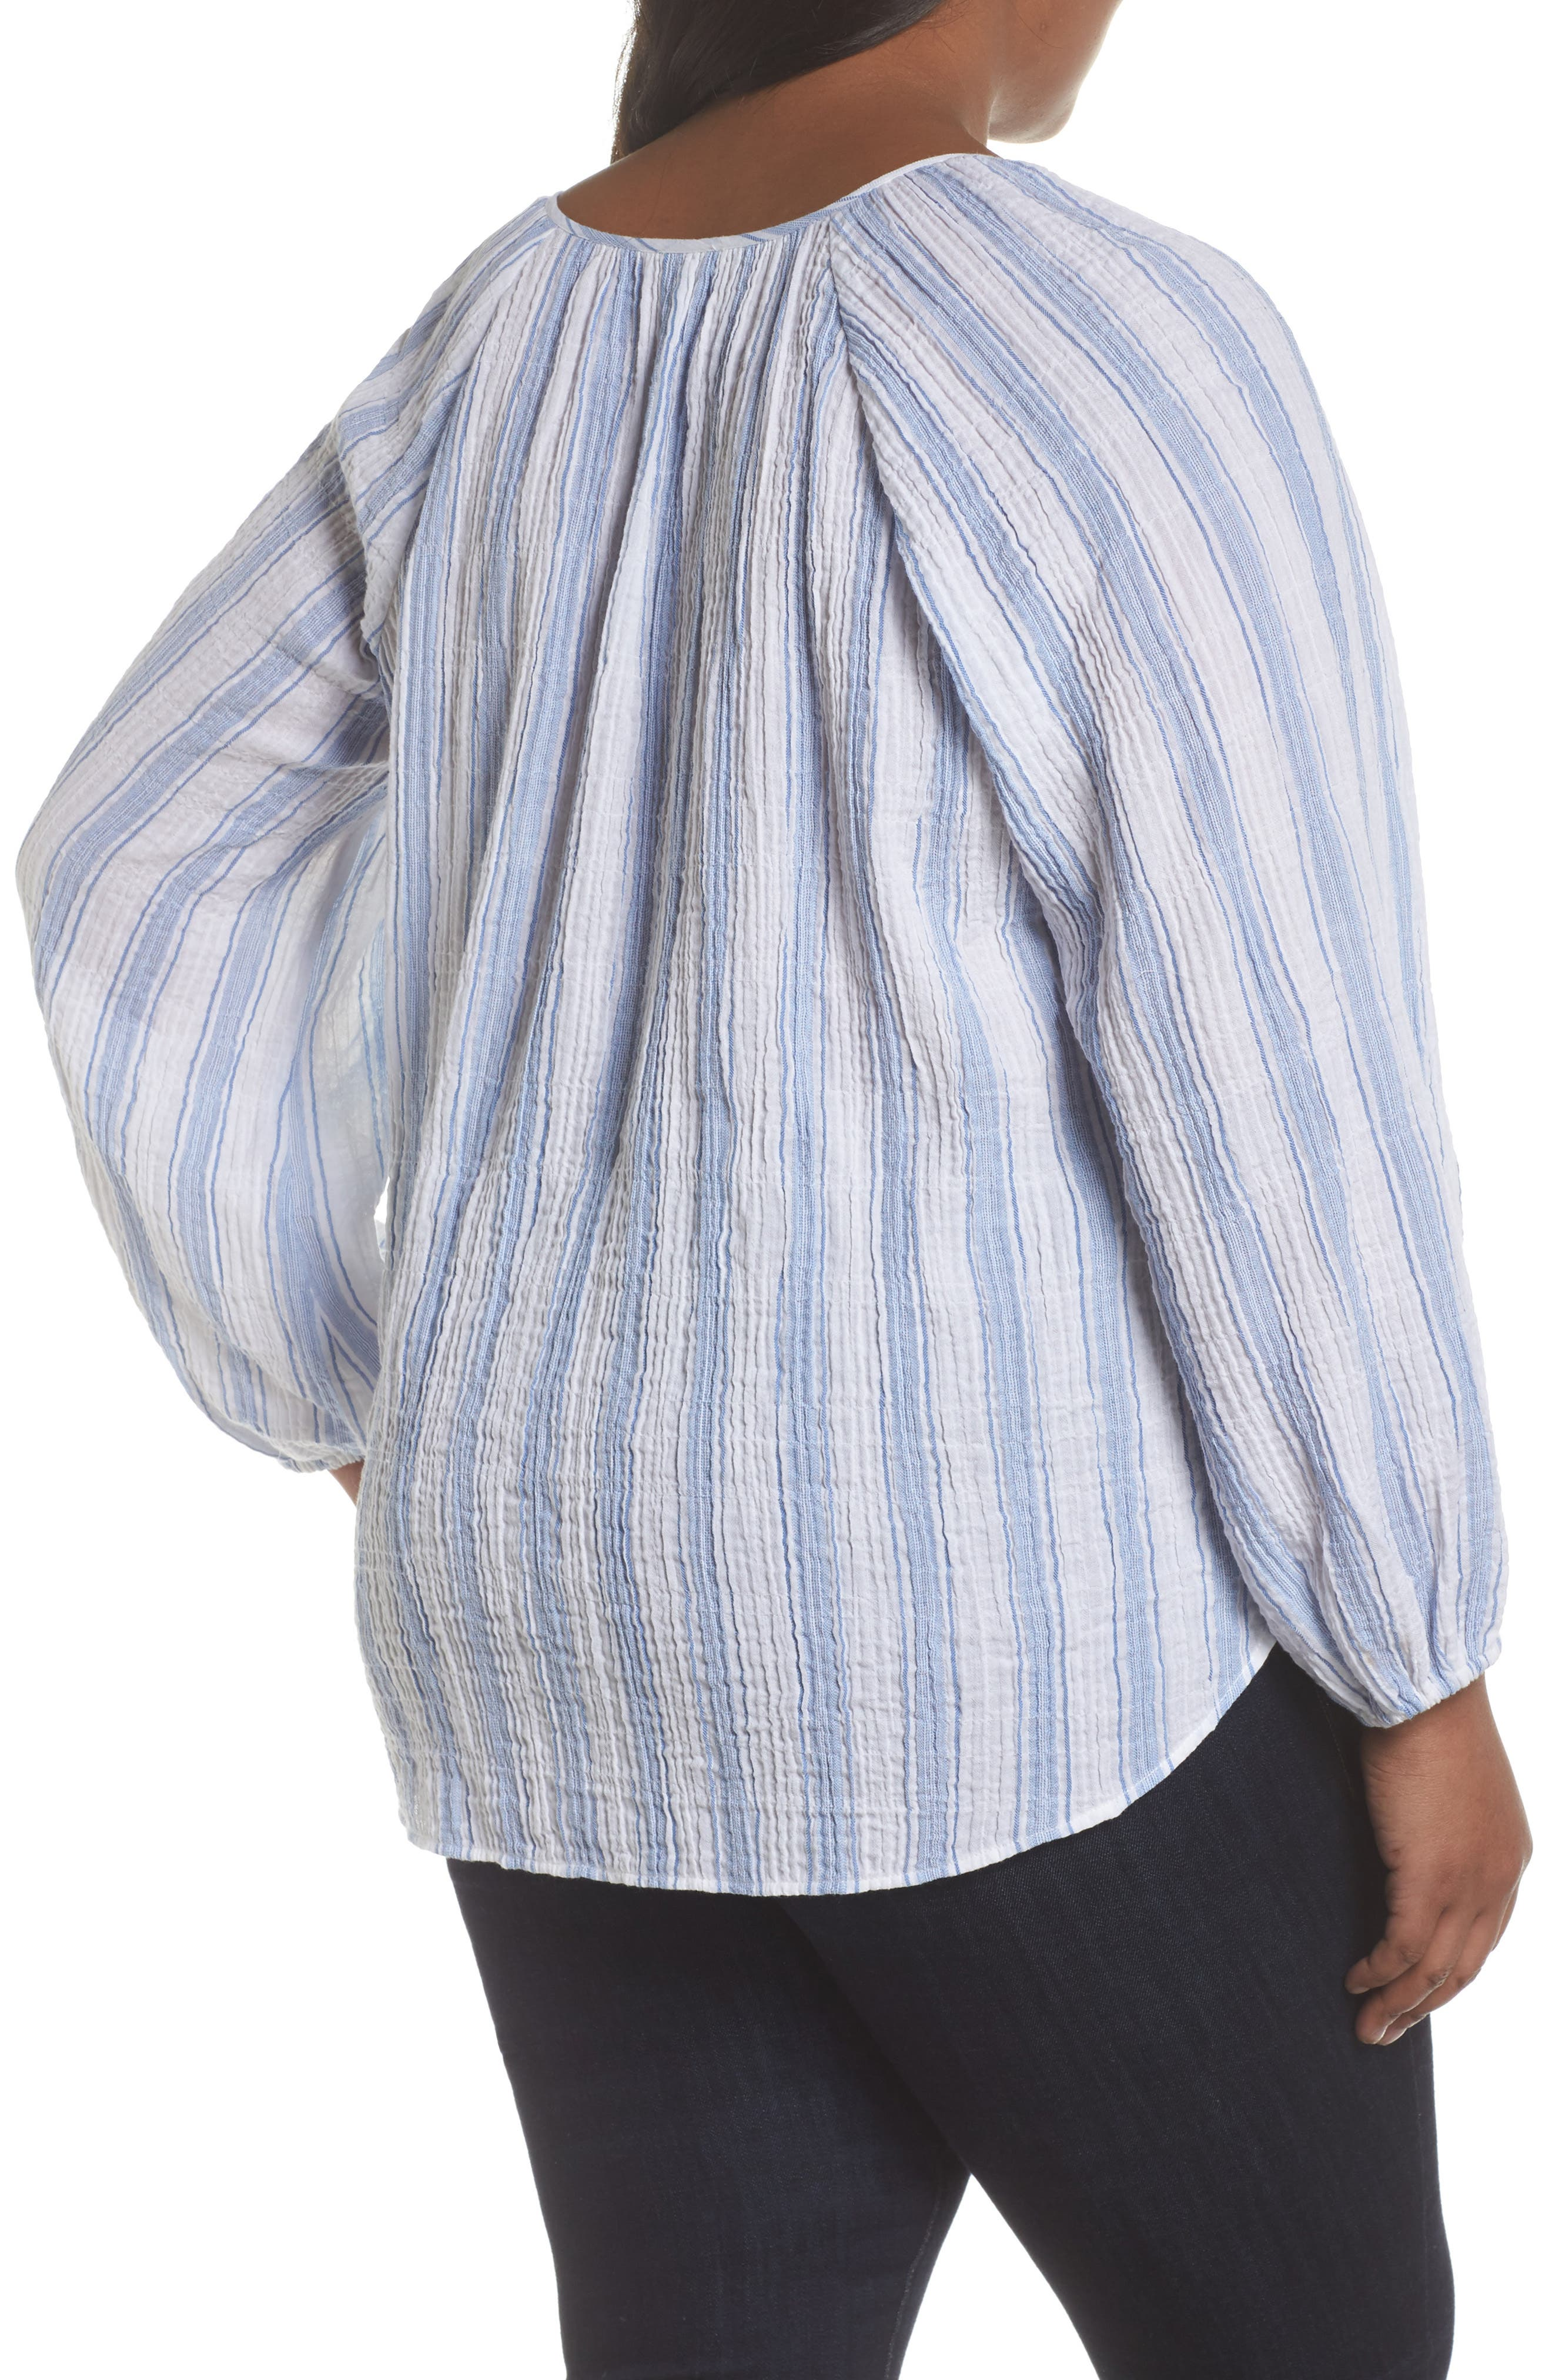 Embroidered Stripe Top,                             Alternate thumbnail 2, color,                             Patina Blue